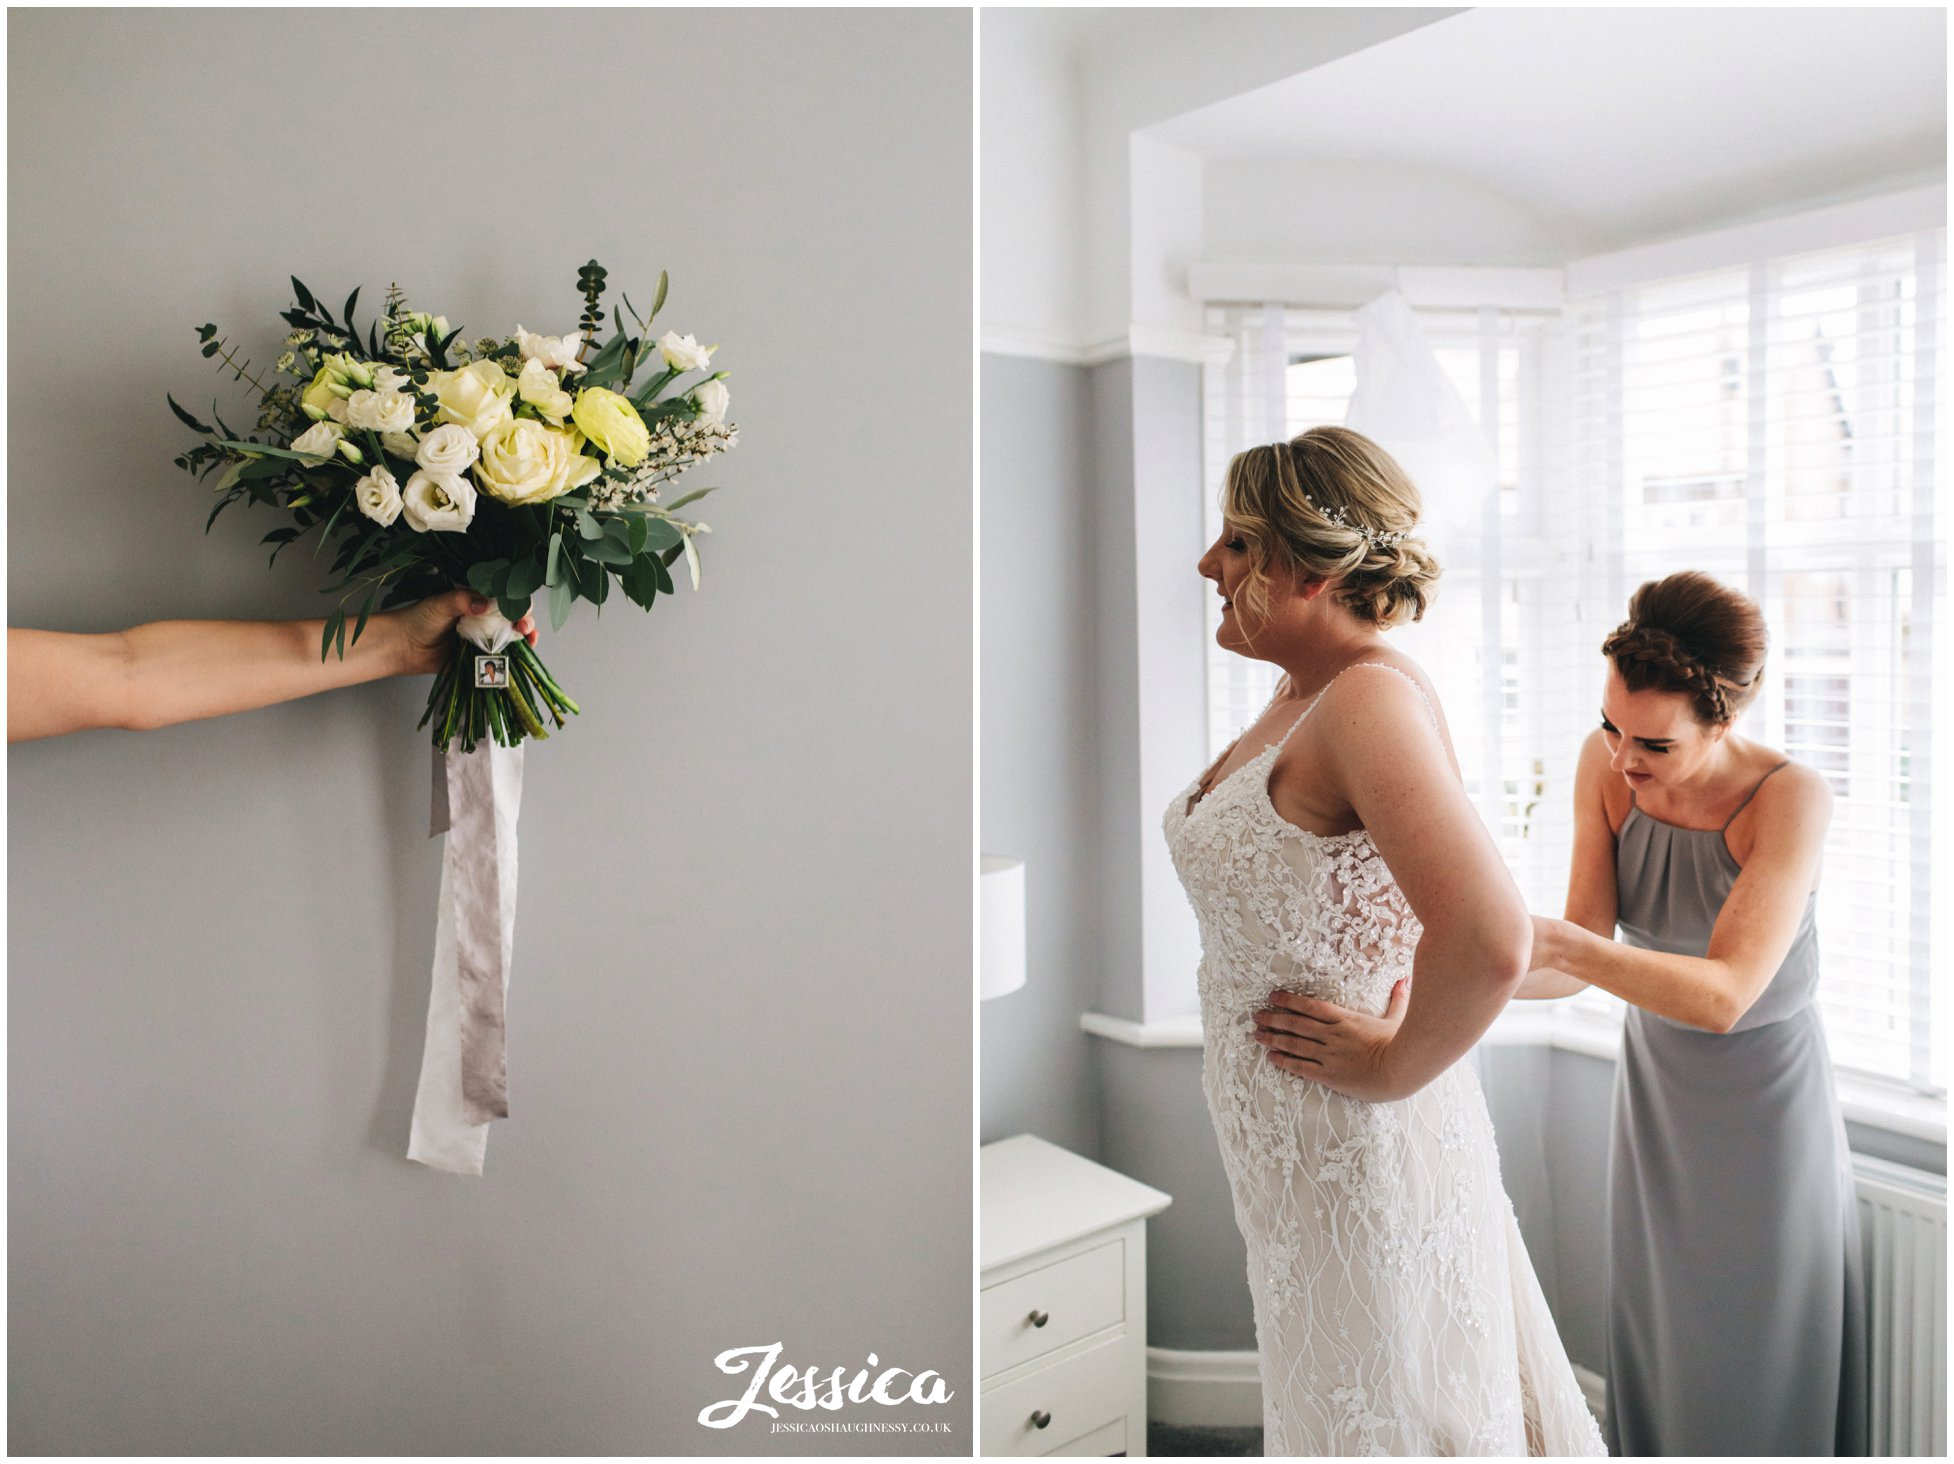 the maid of honour helps the bride into her wedding dress